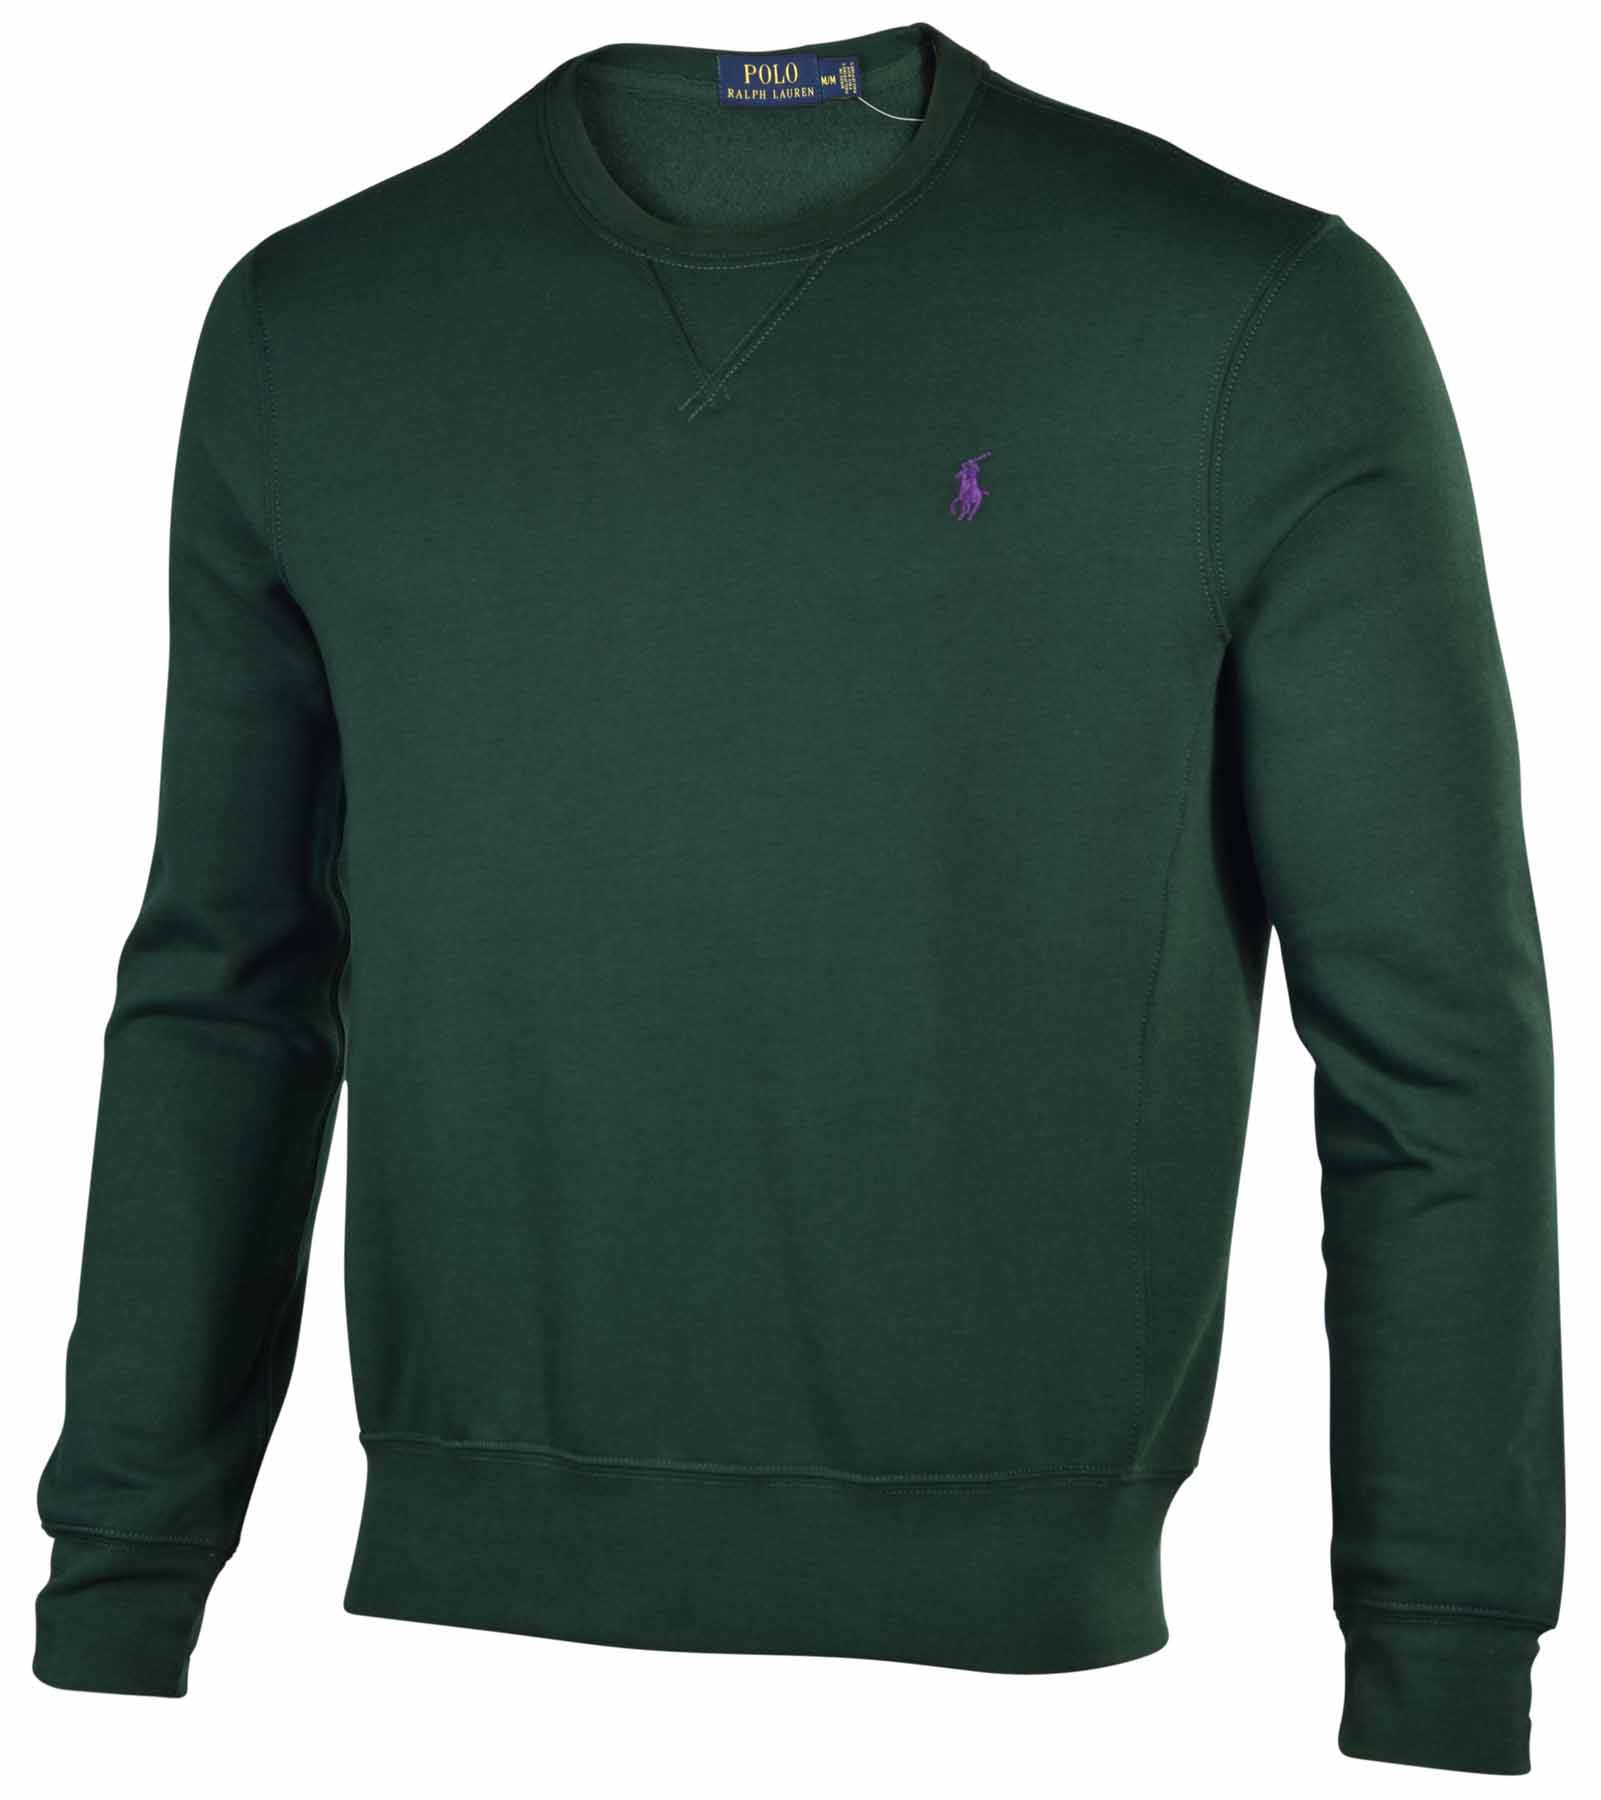 polo ralph lauren men 39 s fleece crewneck sweatshirt ebay. Black Bedroom Furniture Sets. Home Design Ideas